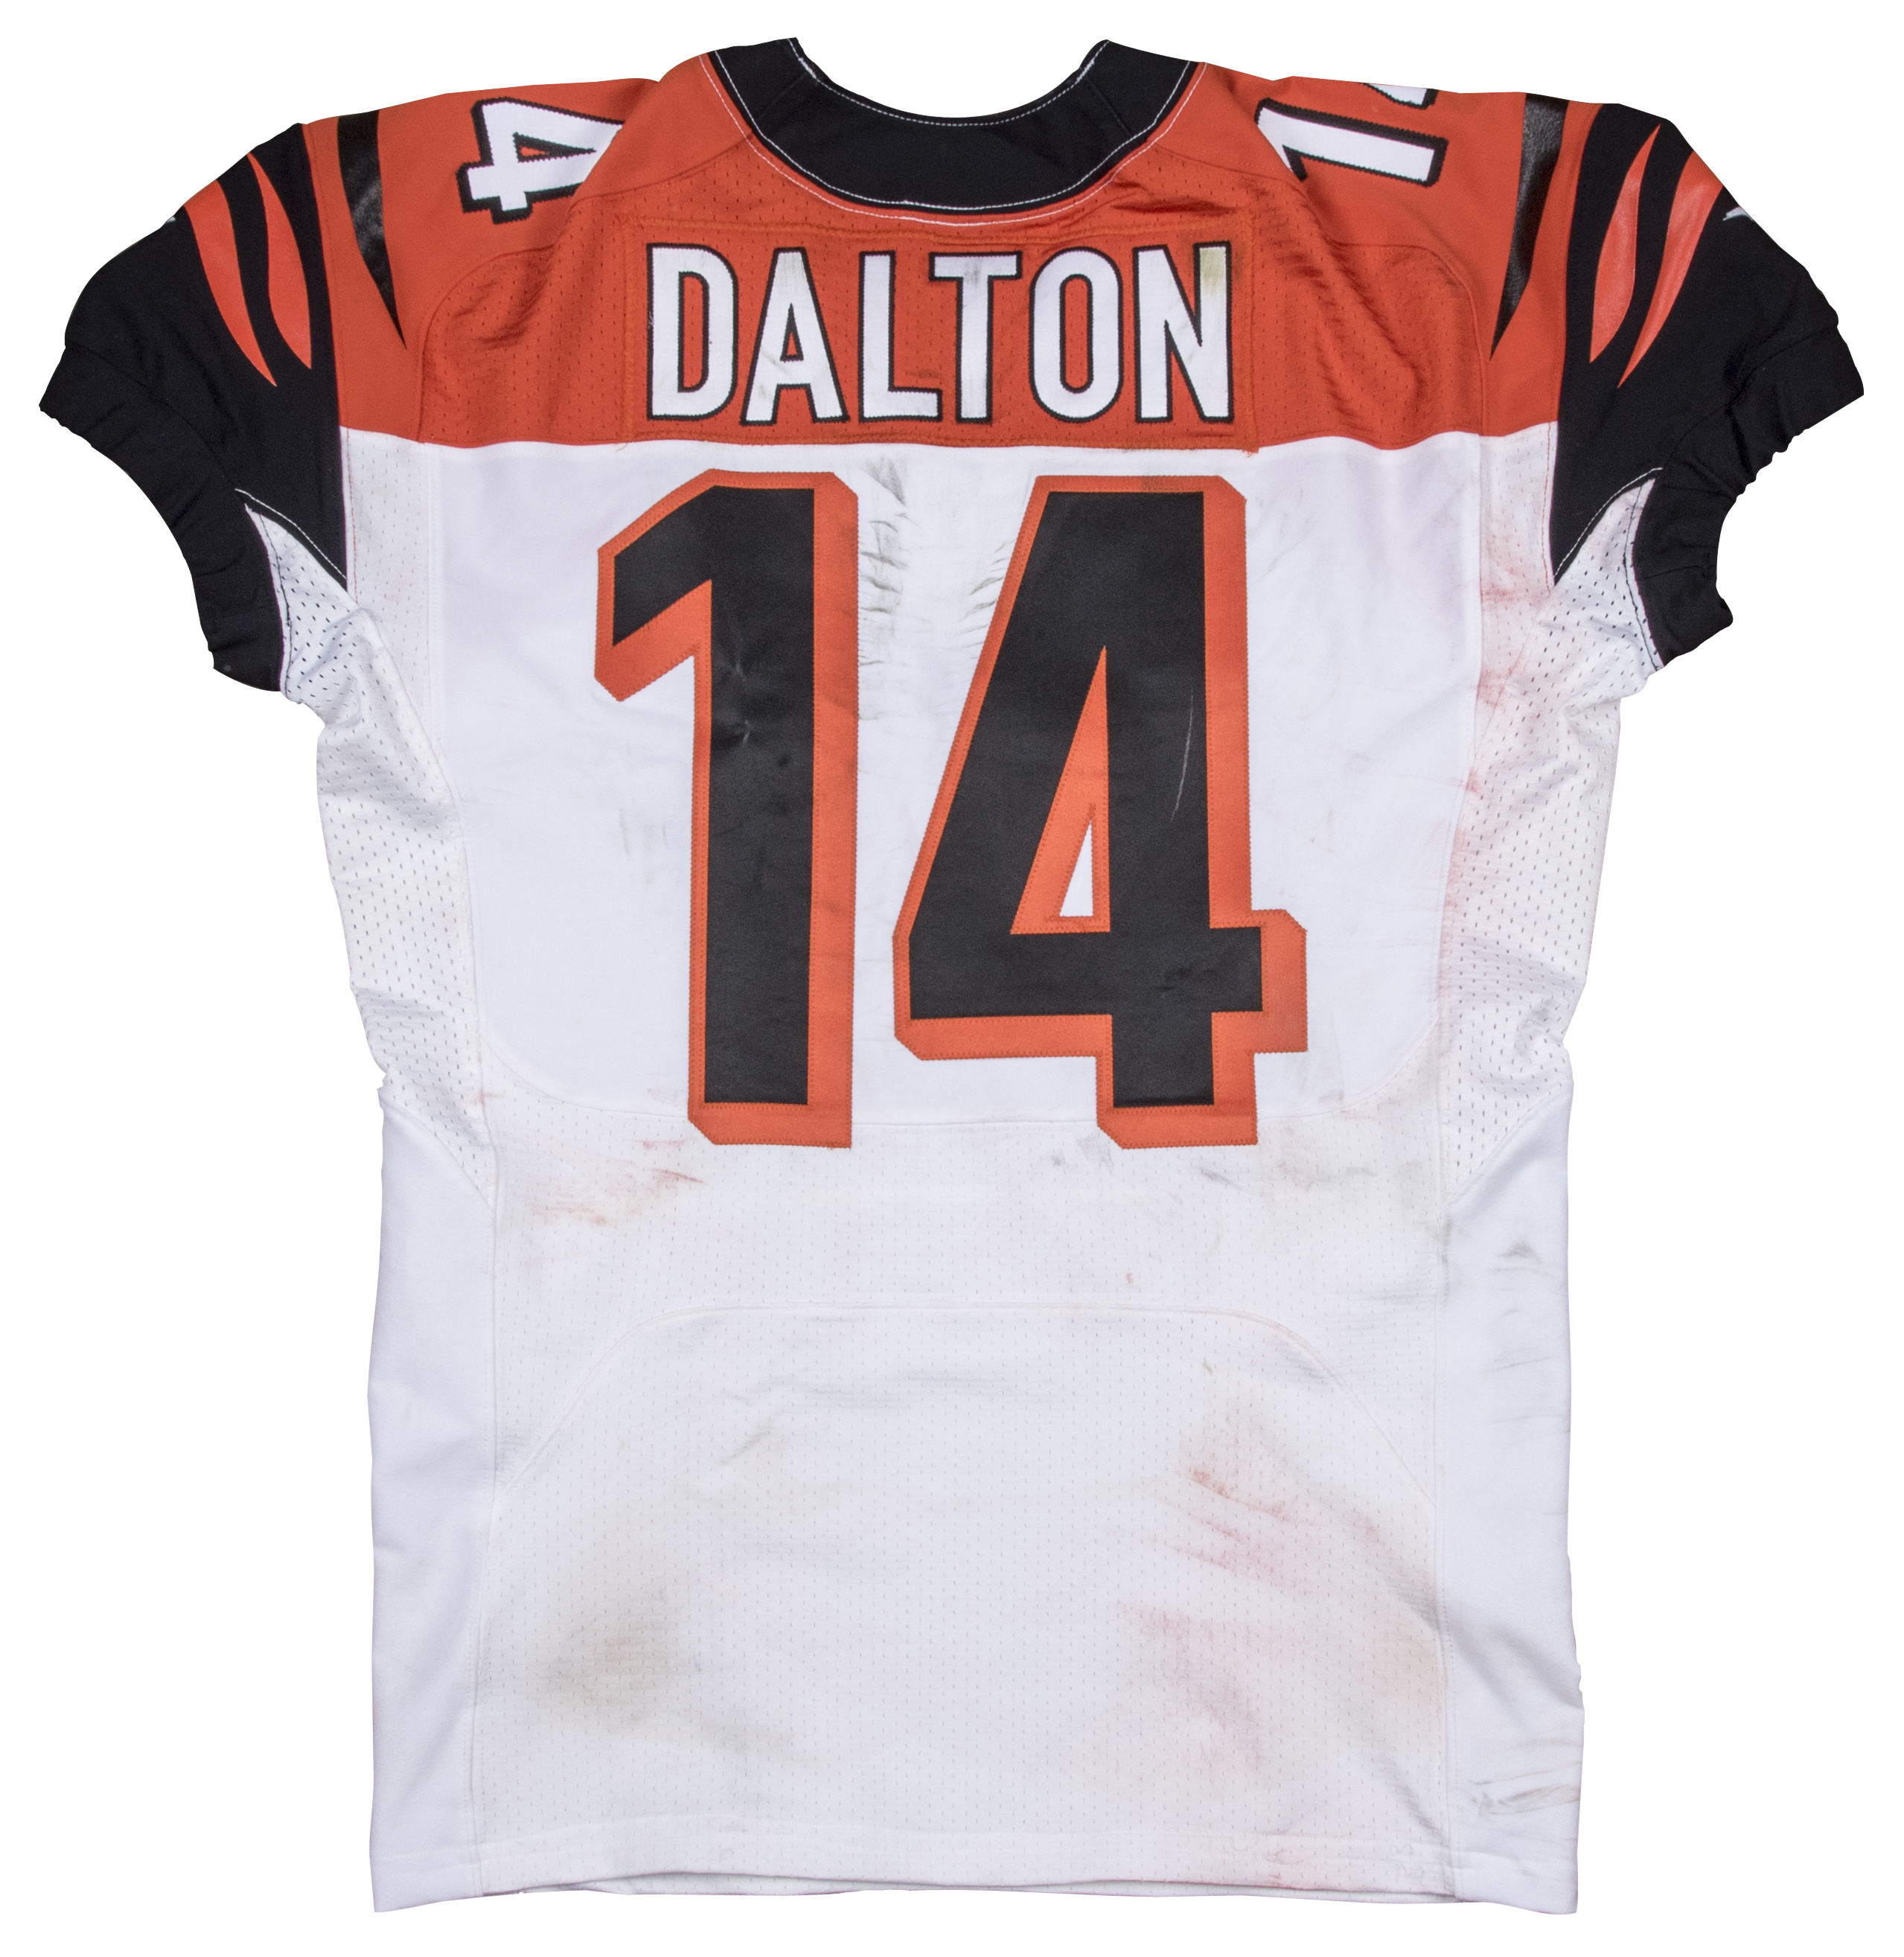 2014 Andy Dalton Game Used Cincinnati Bengals Road Jersey Worn On 11 30 14 ( Bengals Pro Shop) f21c04c65